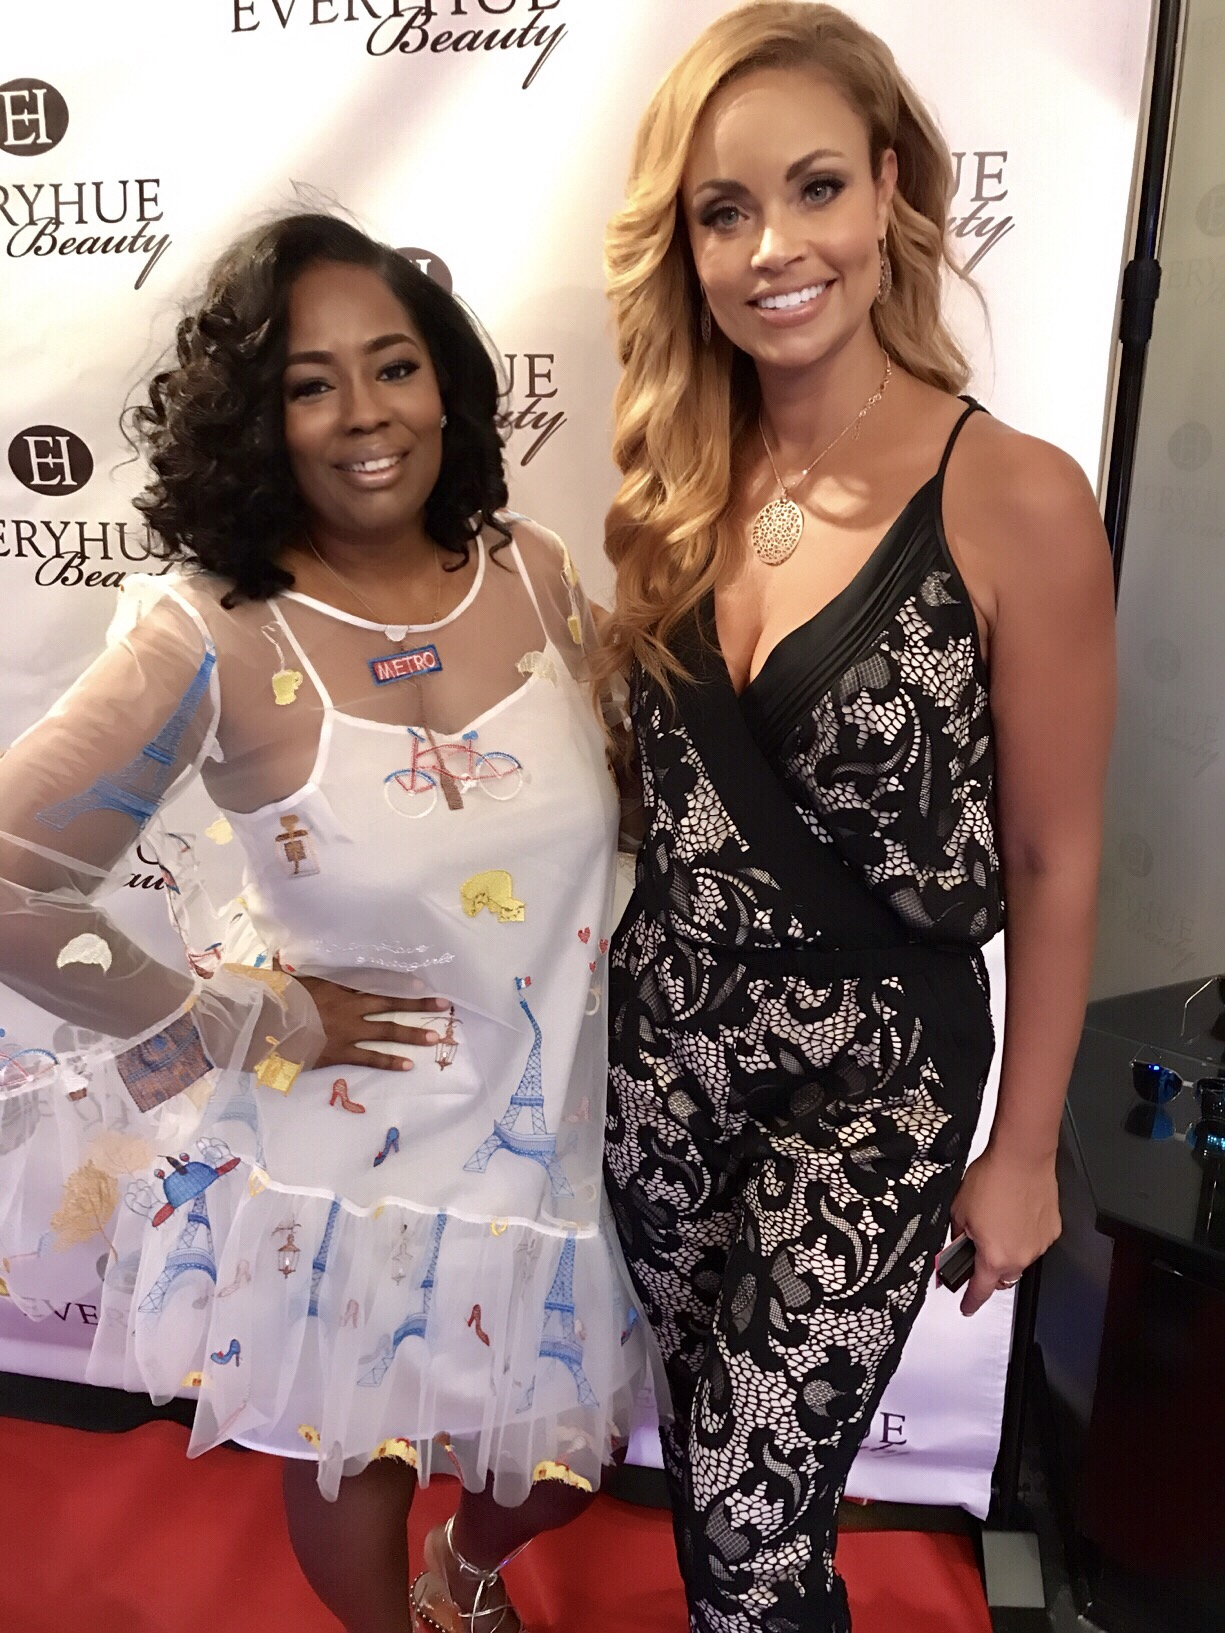 Gizelle Bryant's EveryHue Beauty Event At SWAGG Boutique